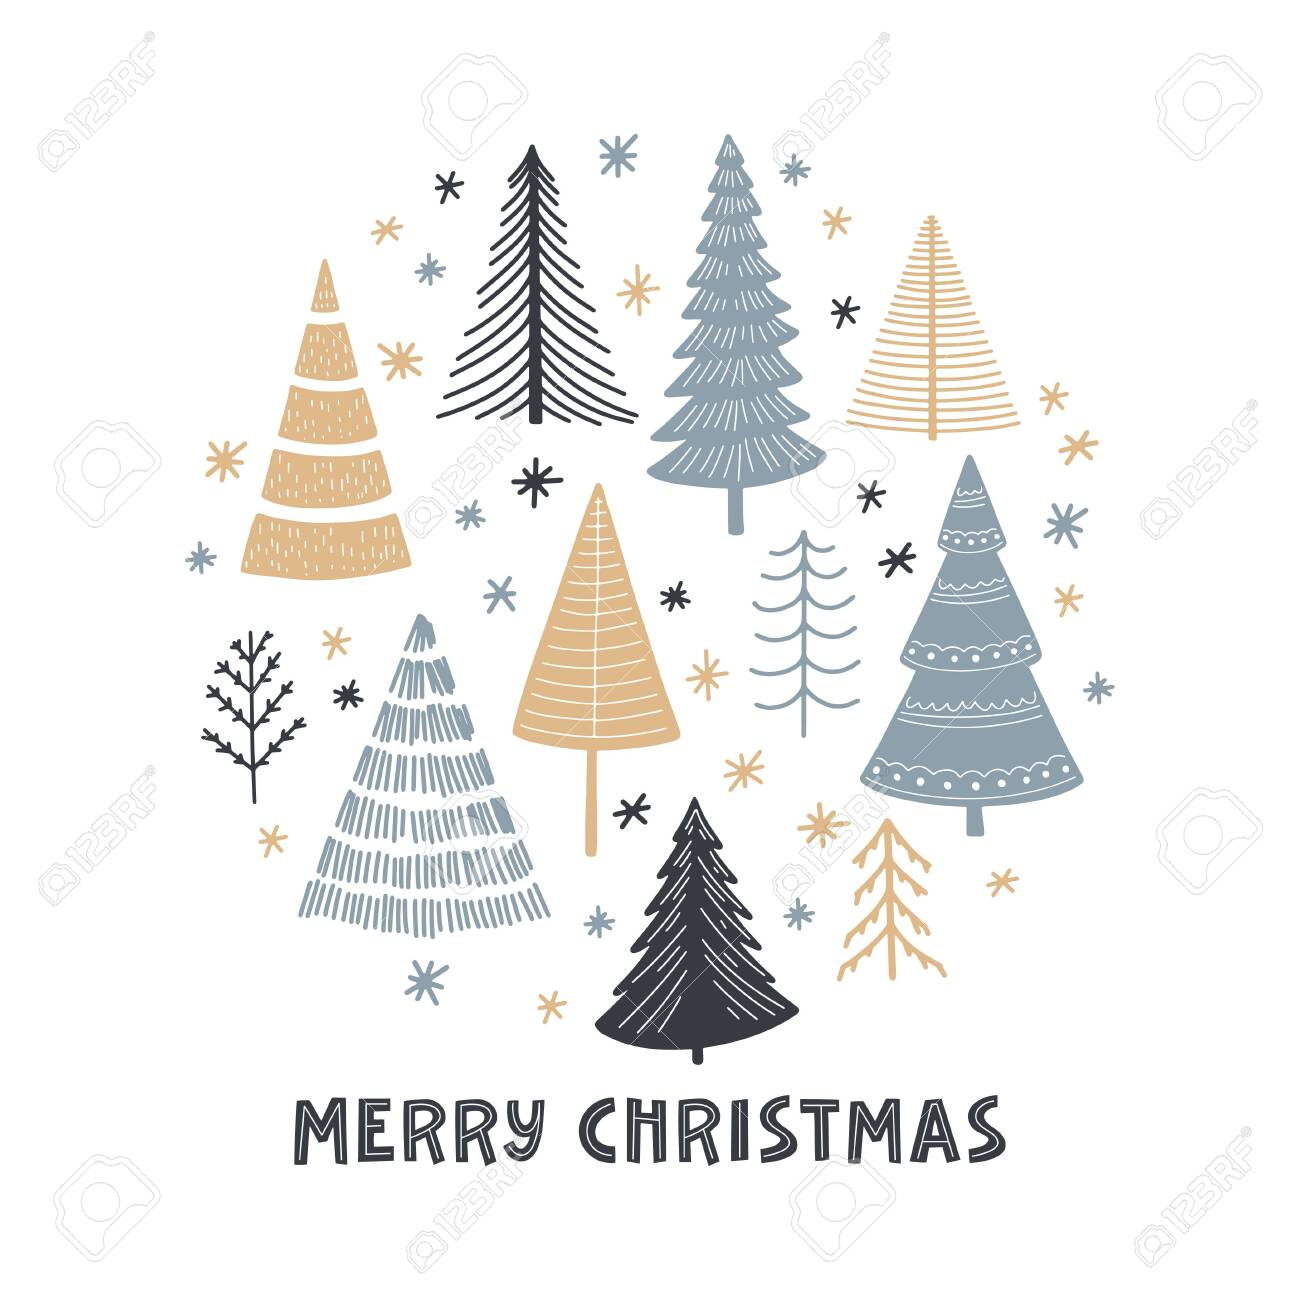 Merry Christmas Simple Minimalist Flat Doodle Trees Set Cartoon Royalty Free Cliparts Vectors And Stock Illustration Image 153242147